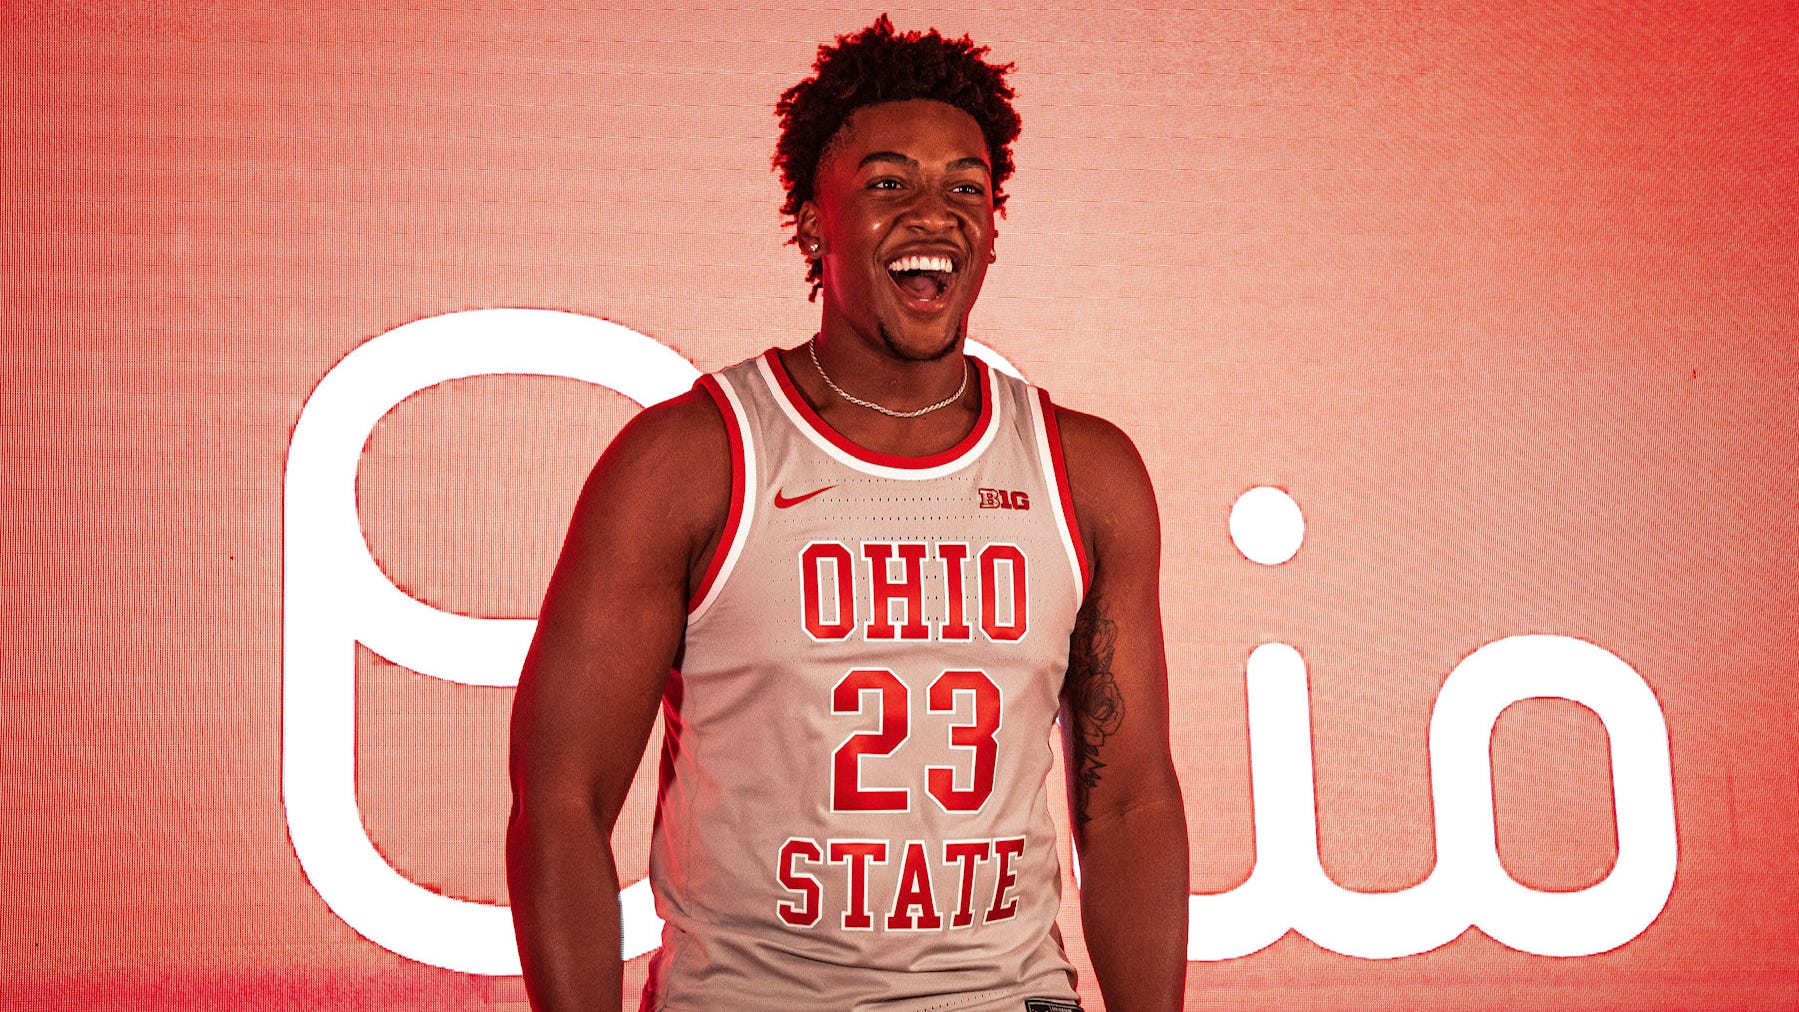 Ohio State lands commitment from four-star 2022 forward Brice Sensabaugh